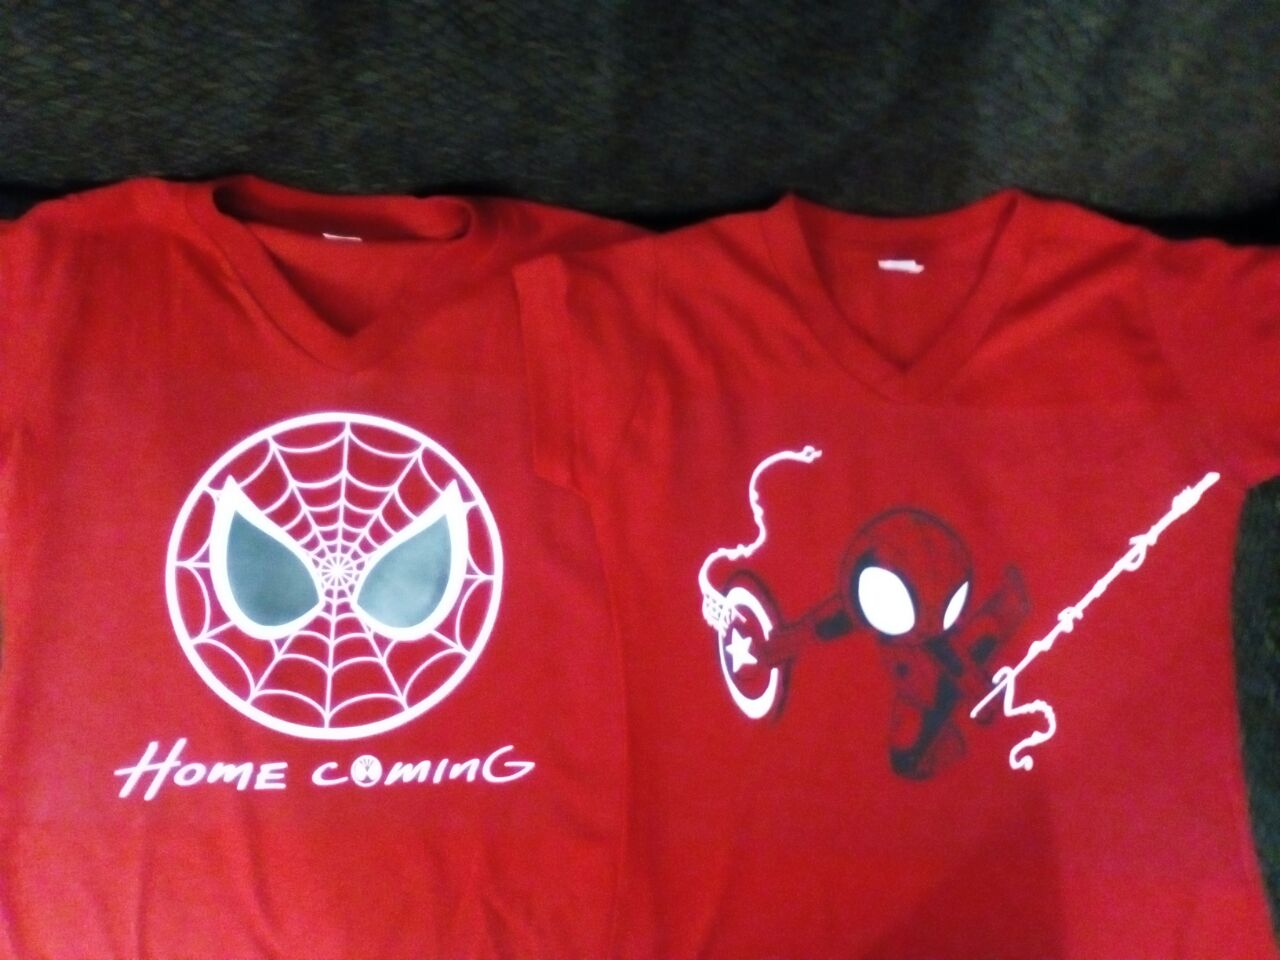 camiseta Spiderman 2